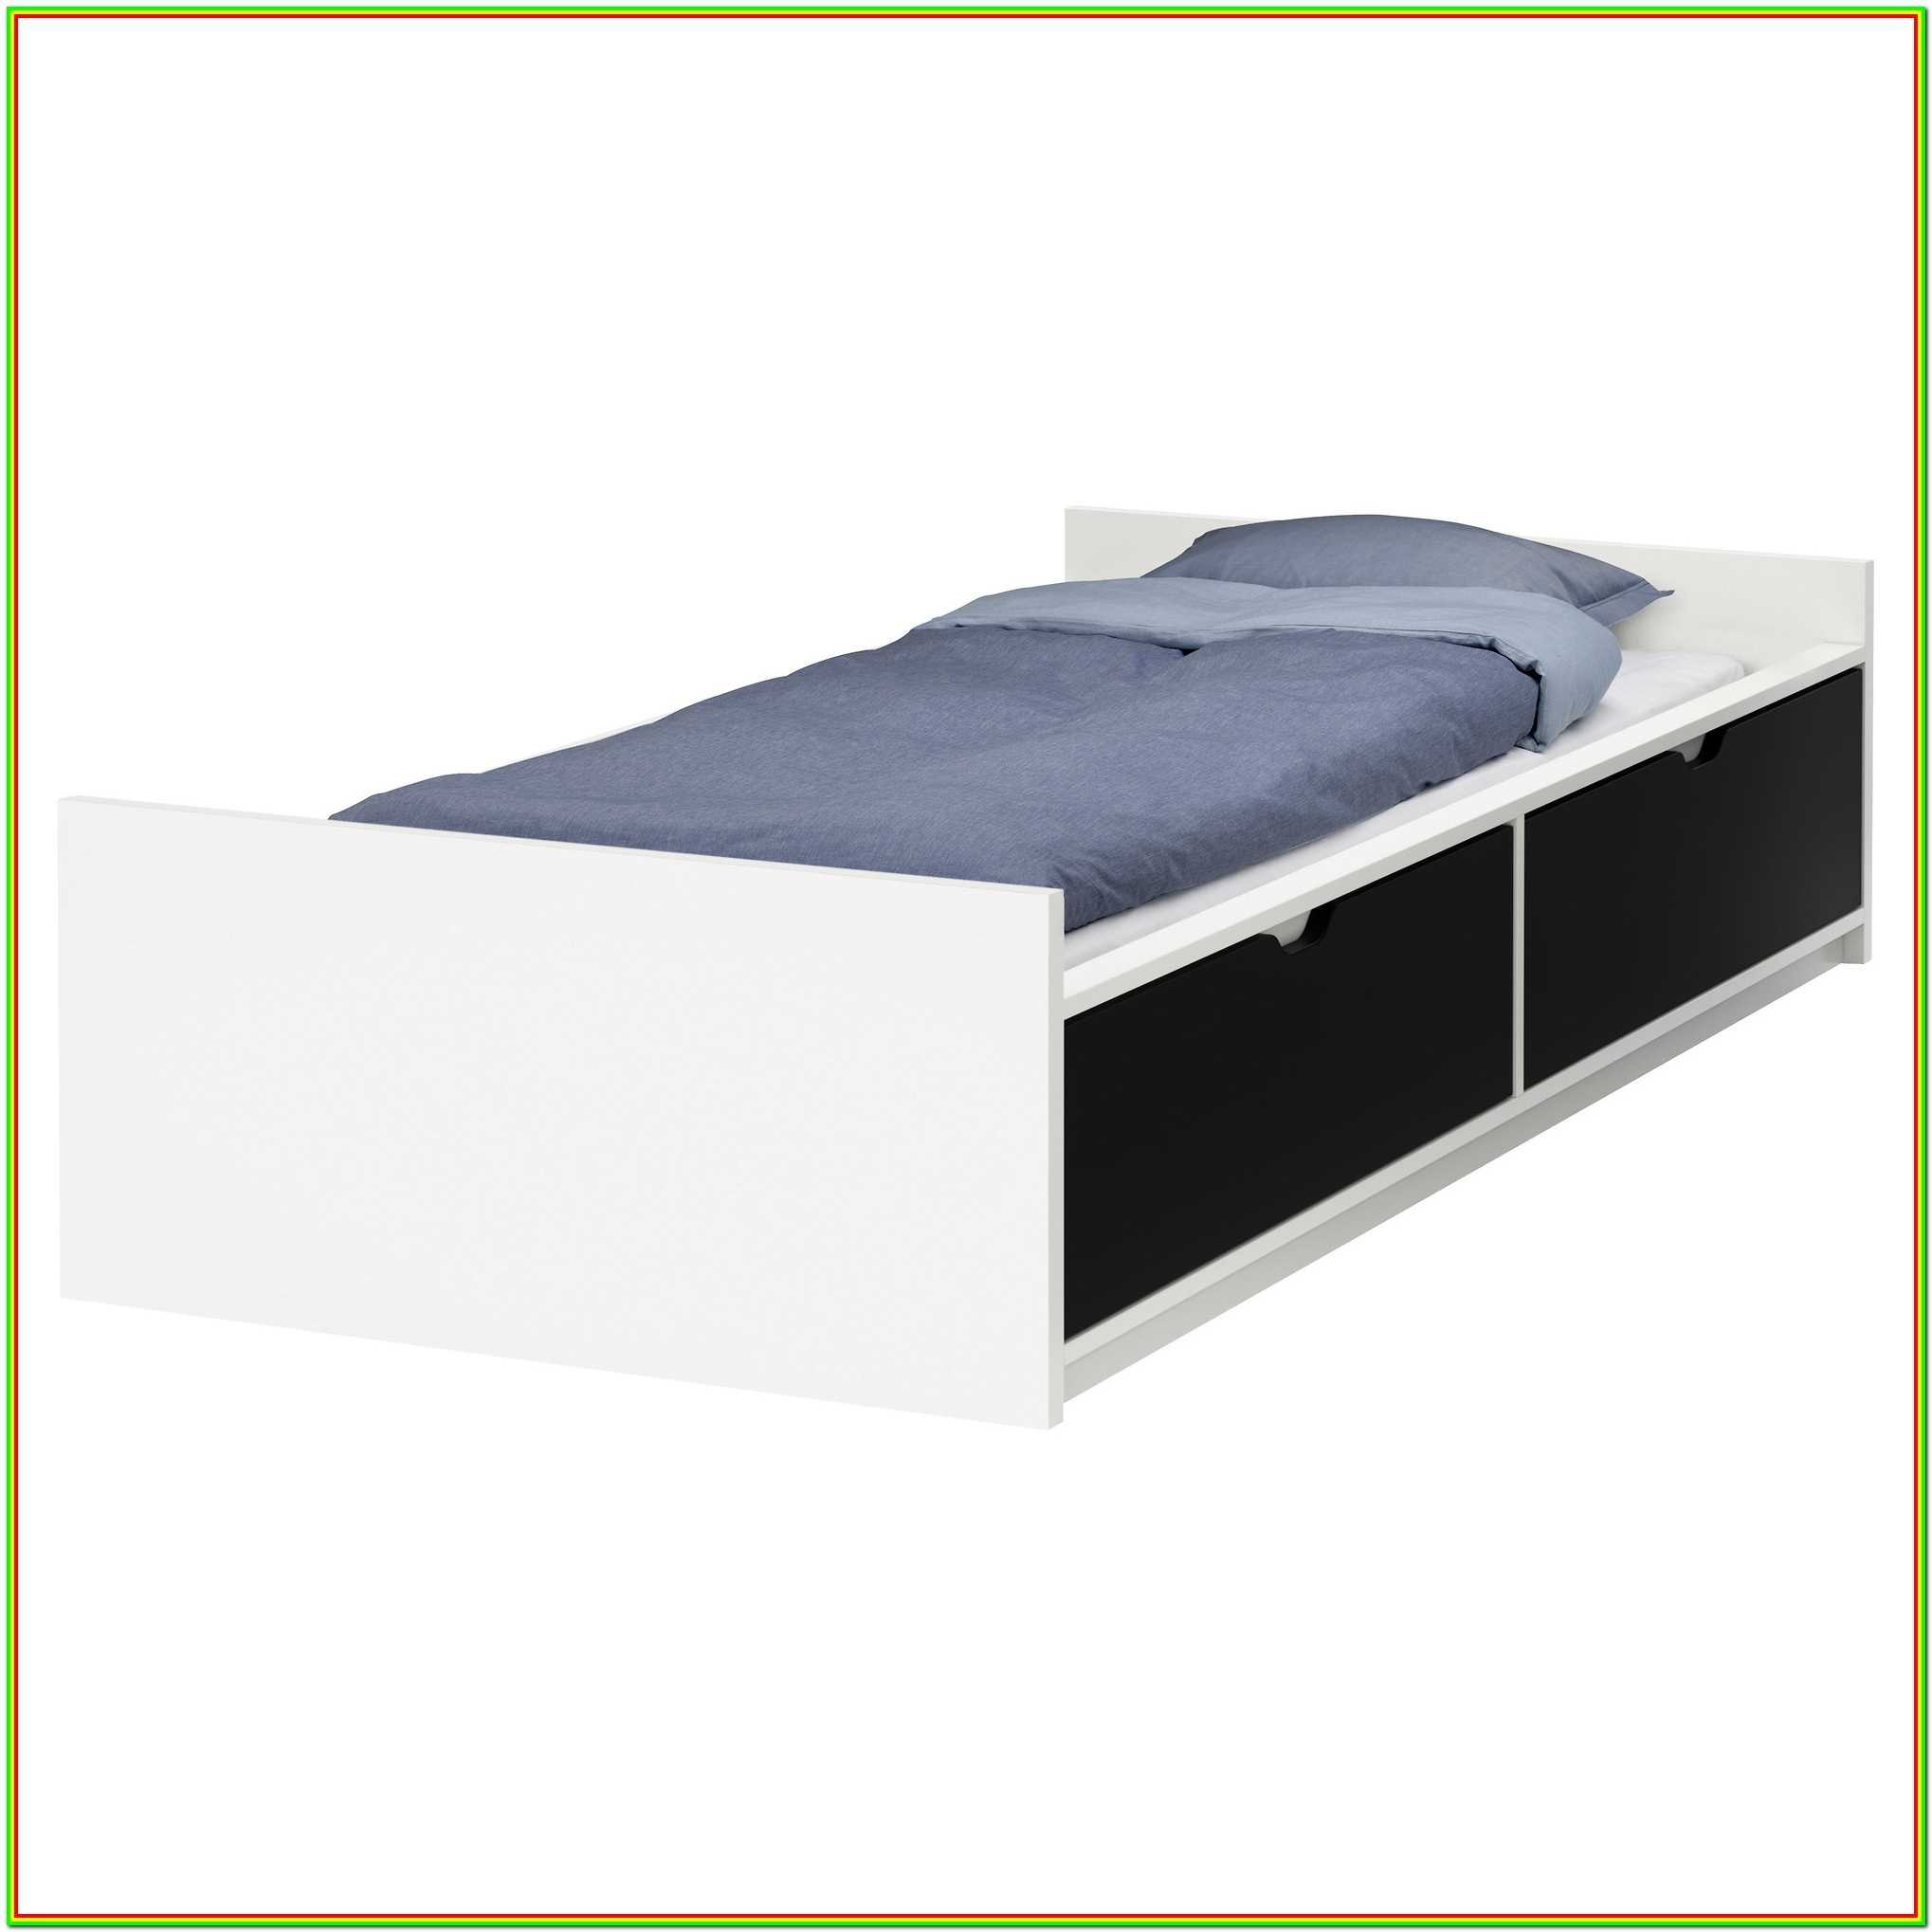 Double Bed Frames With Storage Drawers